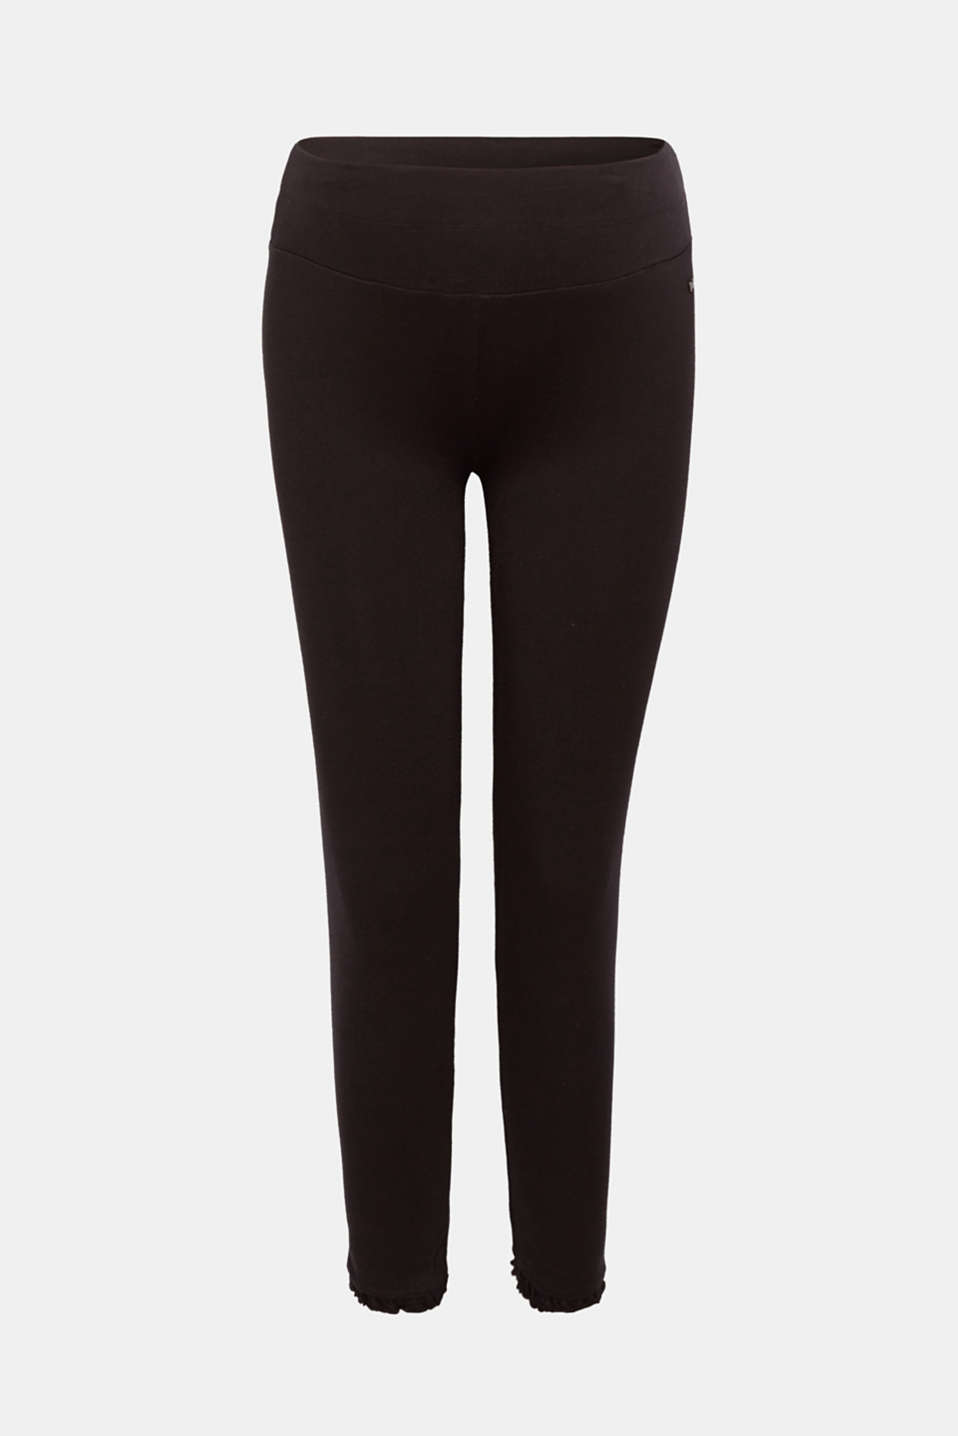 These capri leggings with playful frills on the leg hems are super comfy and ultra trendy!